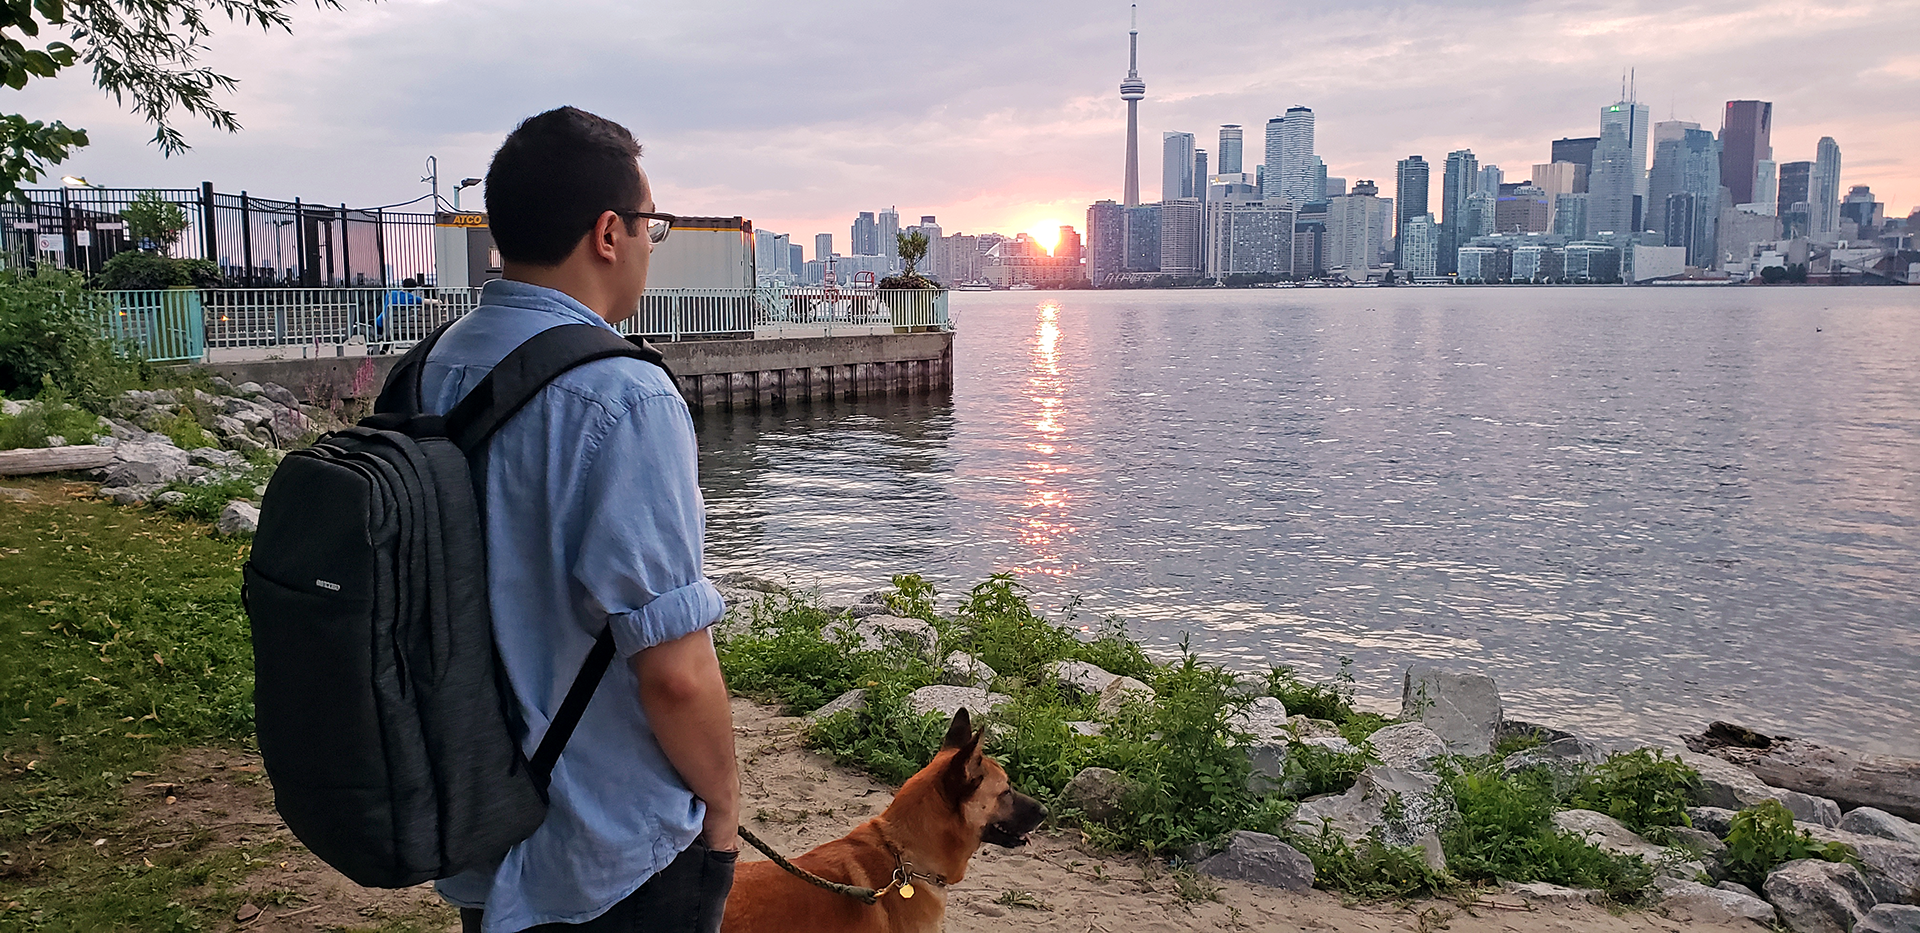 My fiancé and I took Decca to Toronto Island, to escape the commotion of the city and allow her to explore some semblance of nature.